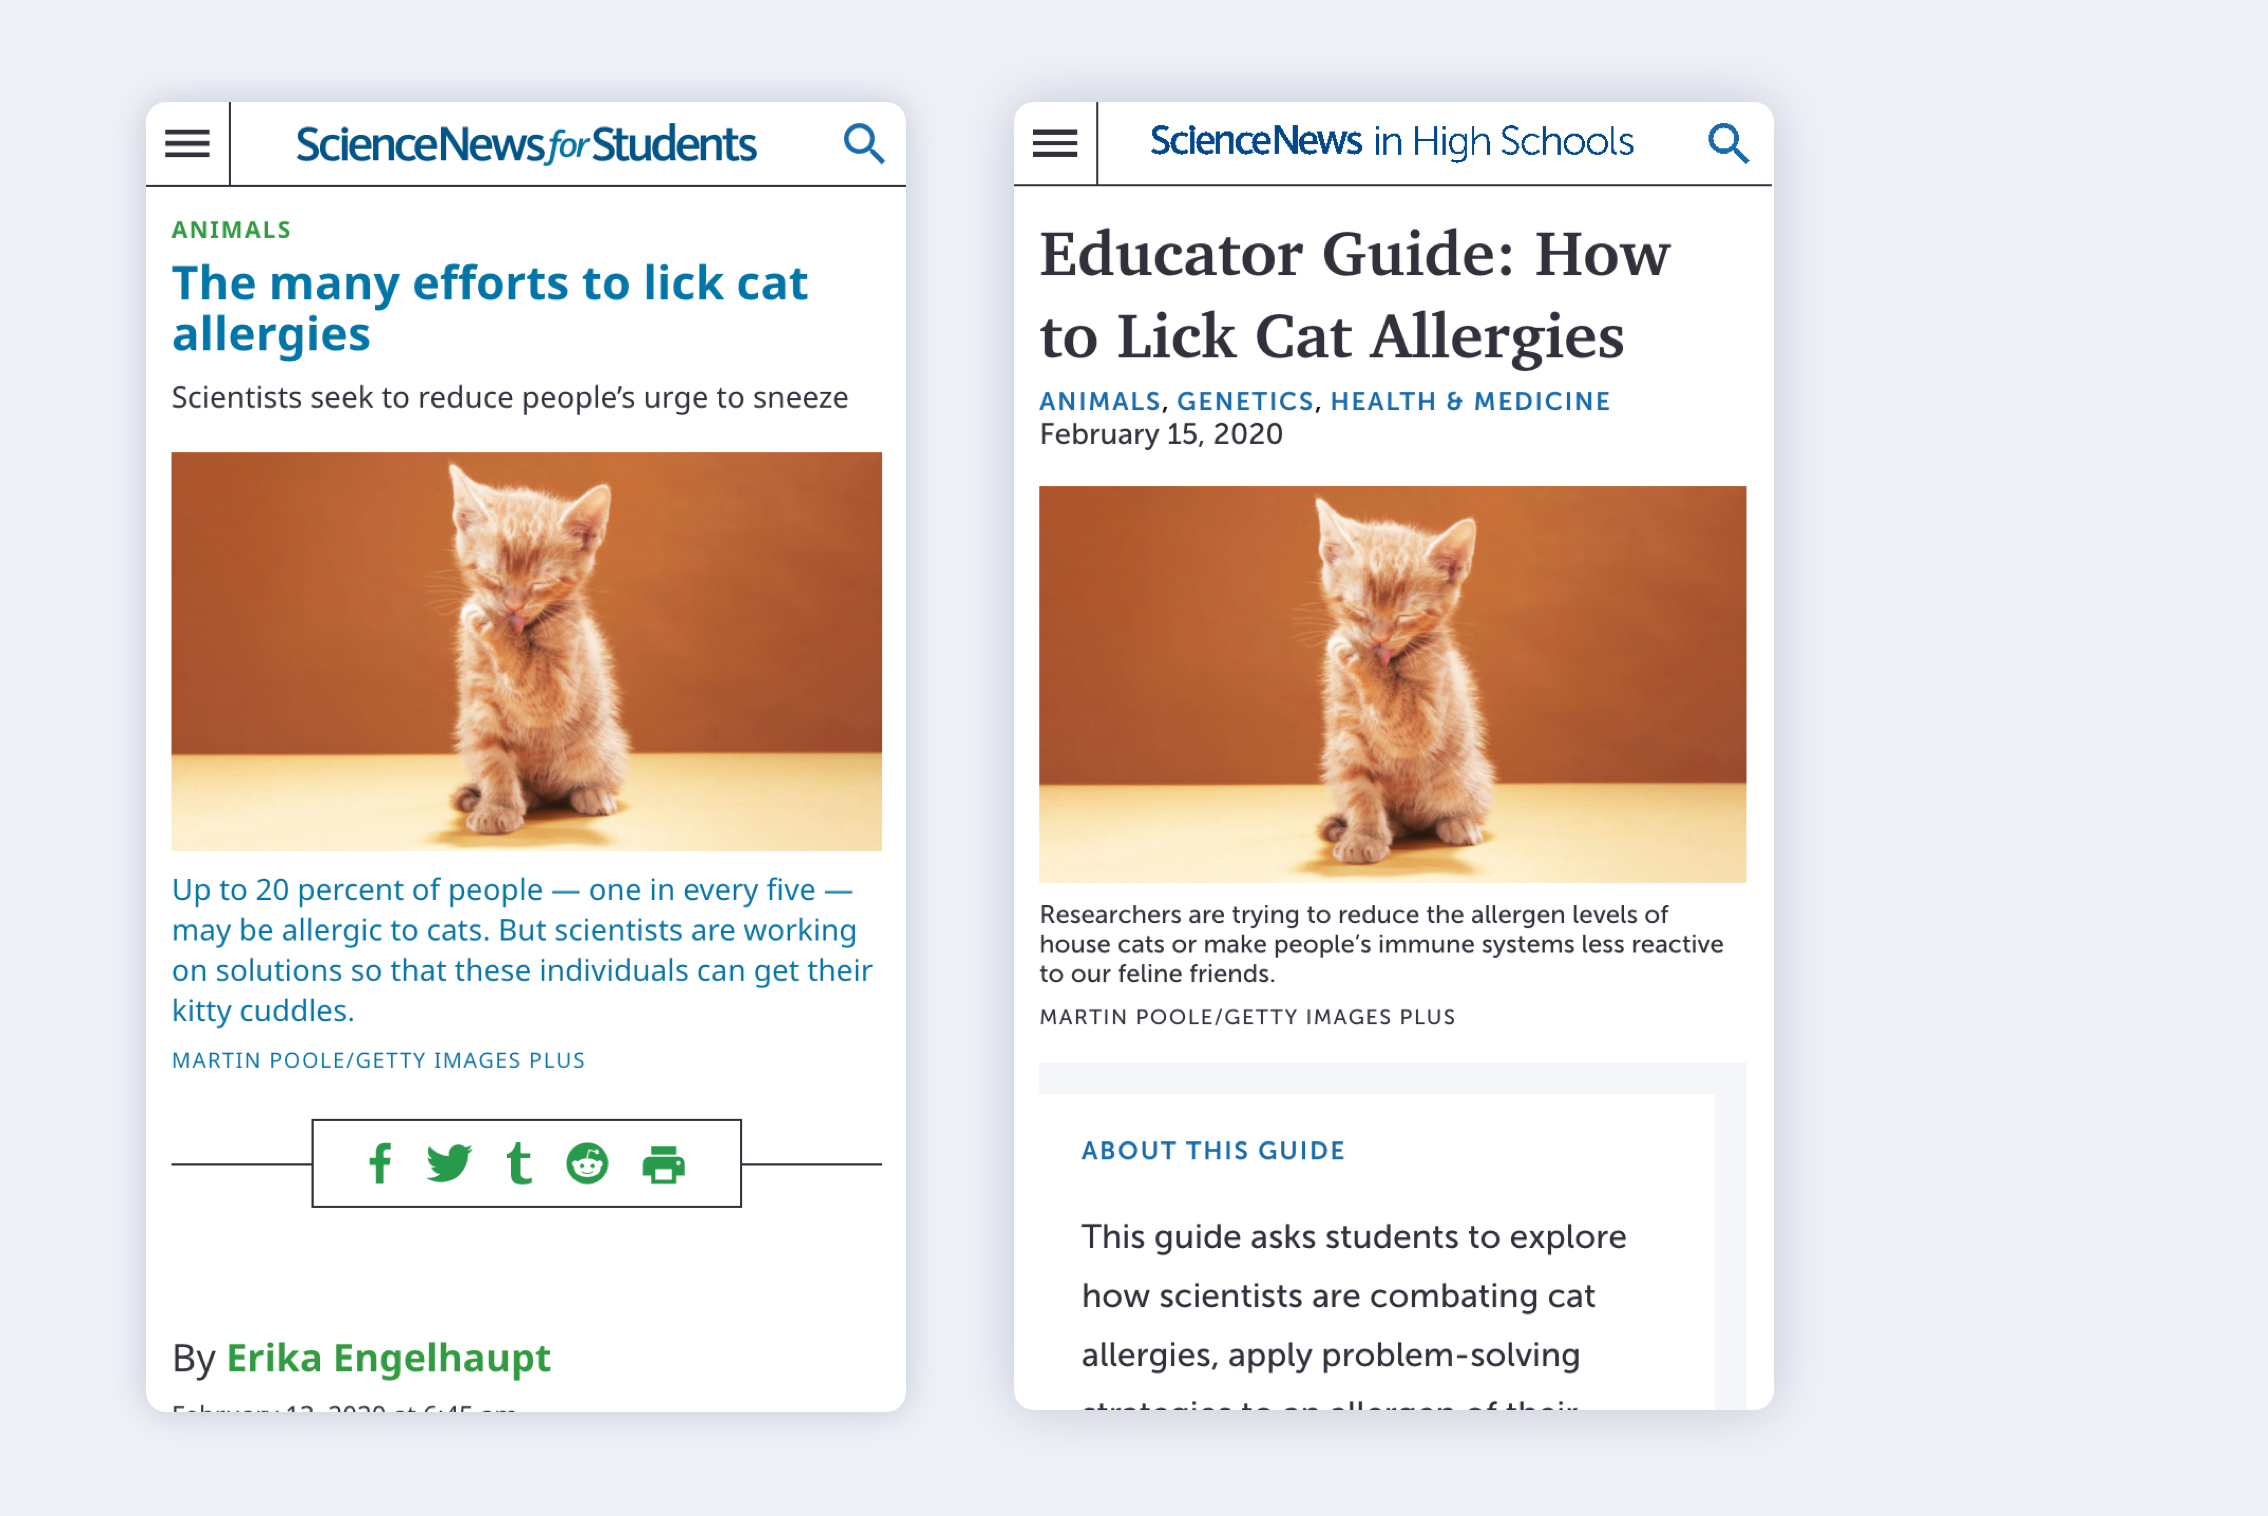 Images of the mobile sites for Science News for Students and Science News in High Schools, with a headline about cat allergies and a picture of a small kitten